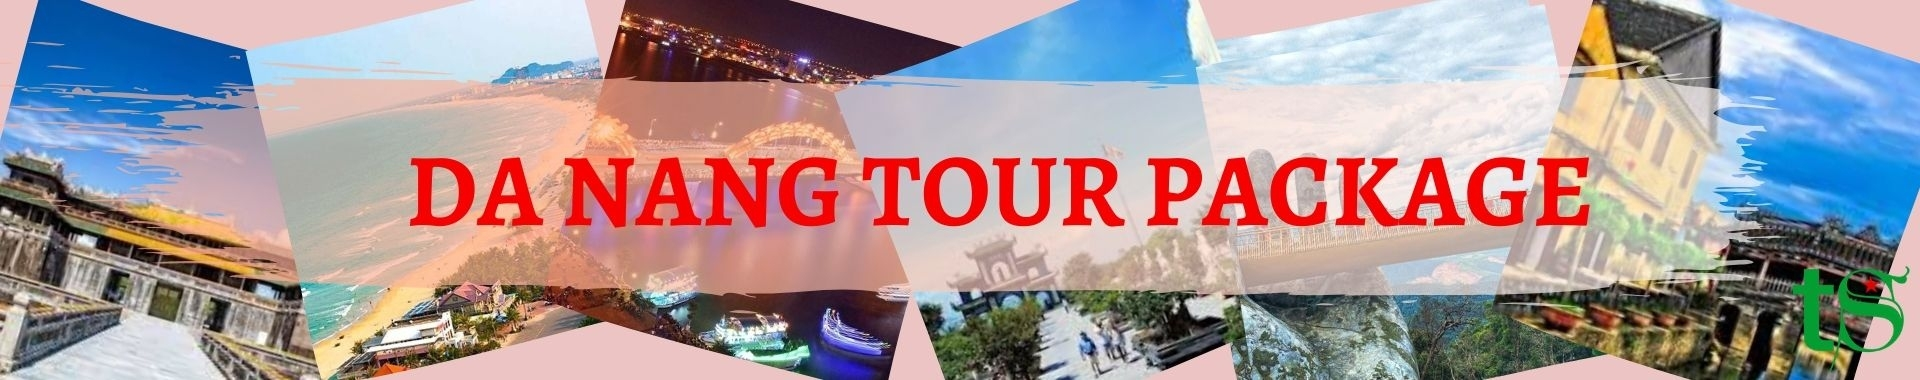 Da Nang Package Tour 4Days